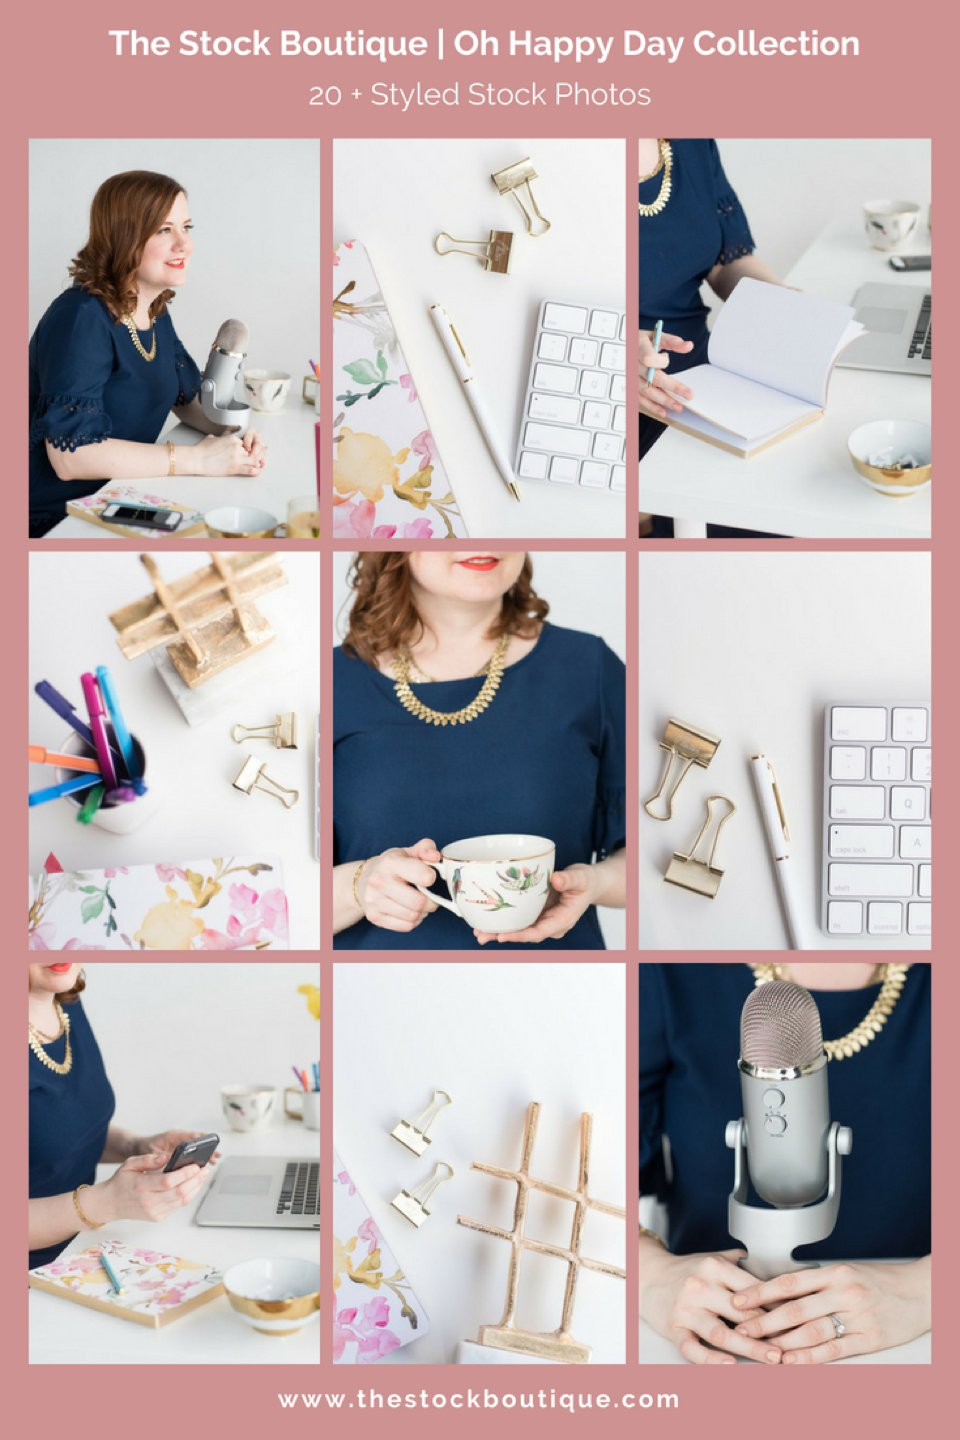 Girl Boss Stock Photography Collection. We giveaway a stock photo every month when you subscribe! - The Stock Boutique   #stockphoto     #femaleentrepreneur    #smallbusiness